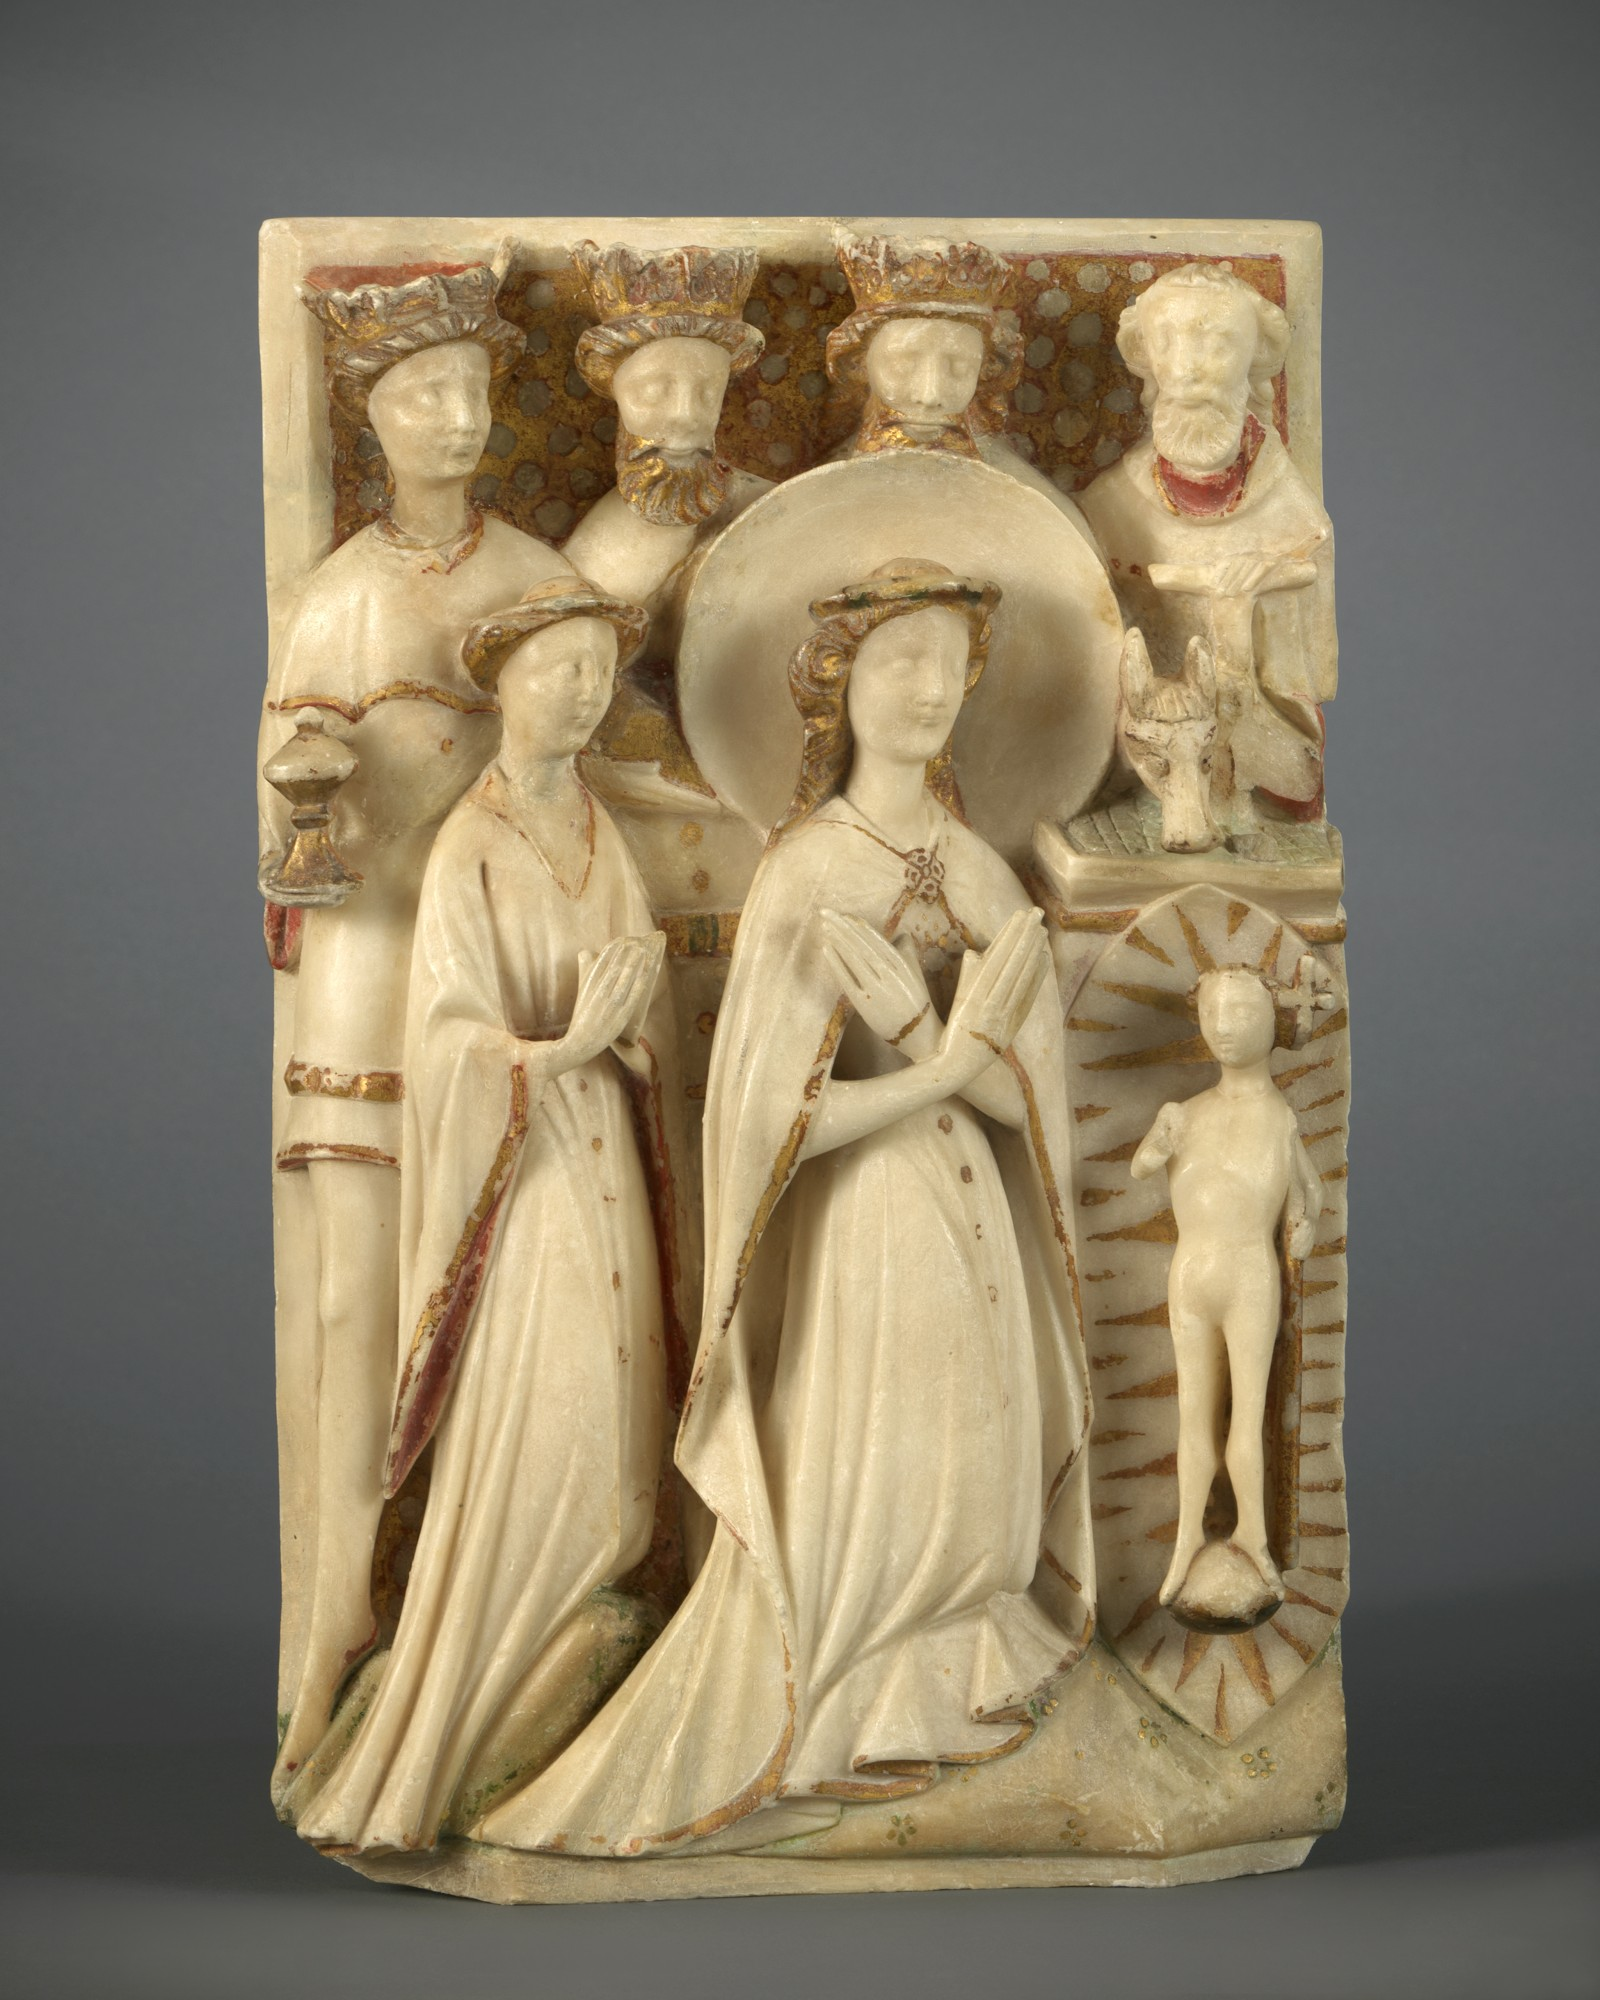 Relief with the Adoration of the Magi, England, Nottingham, 15th century